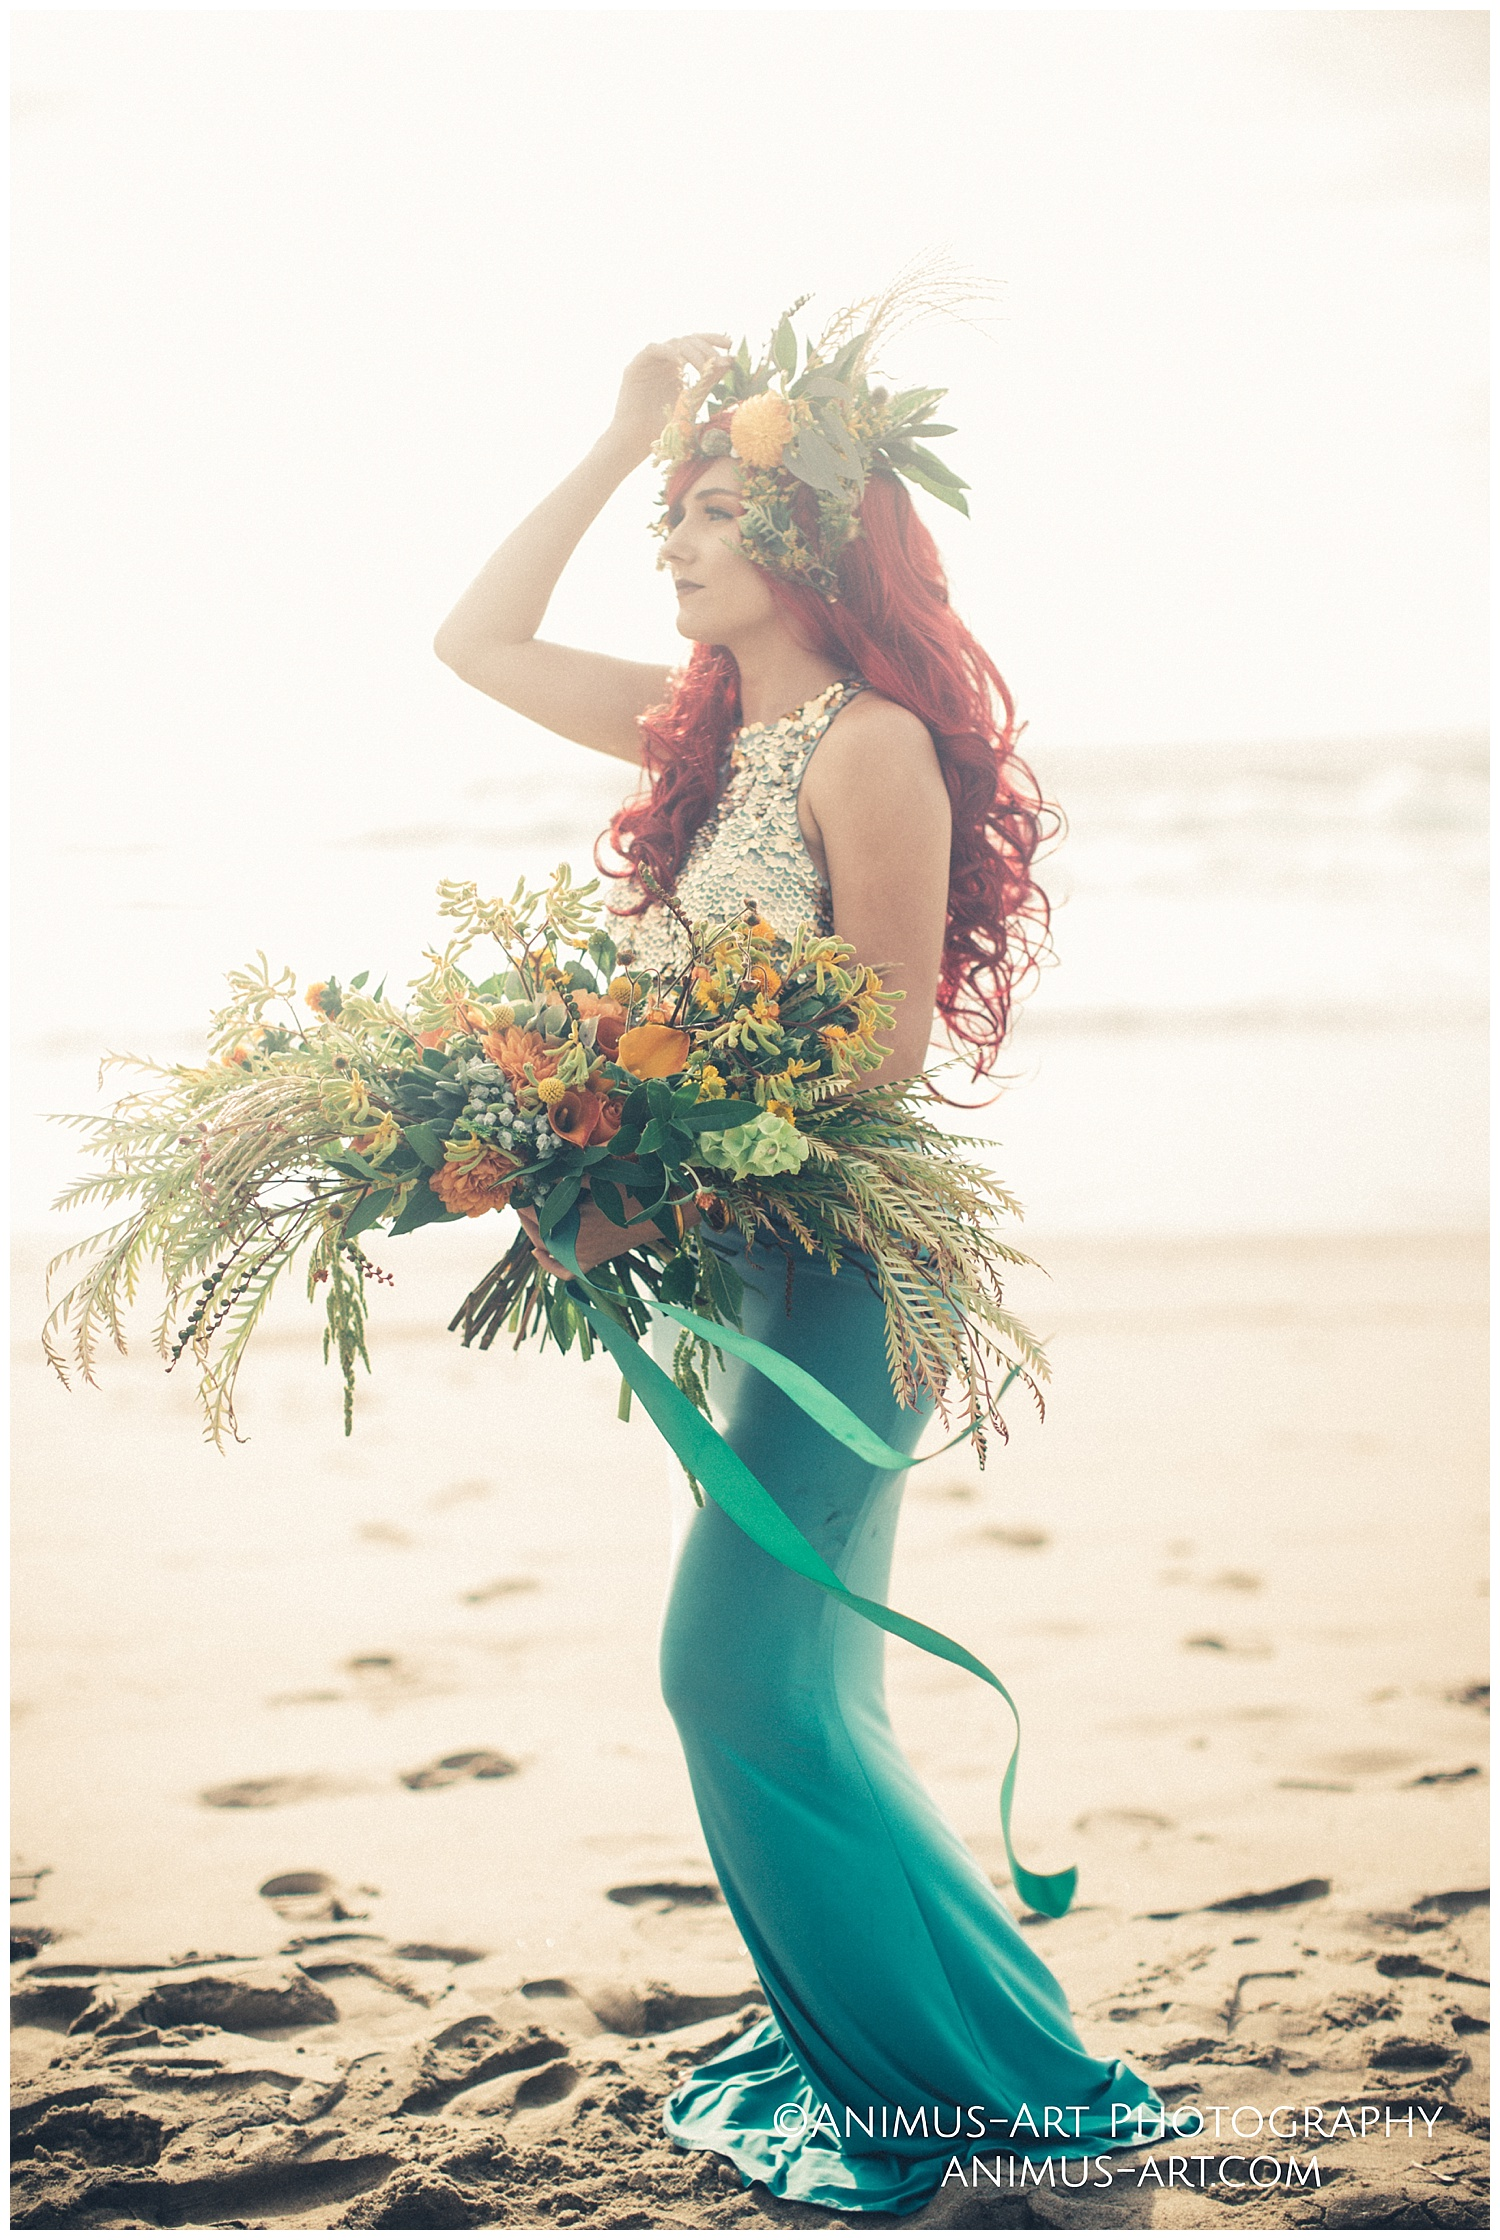 Mera Portraits at the beach bohemian floral crown and bouquet.jpg